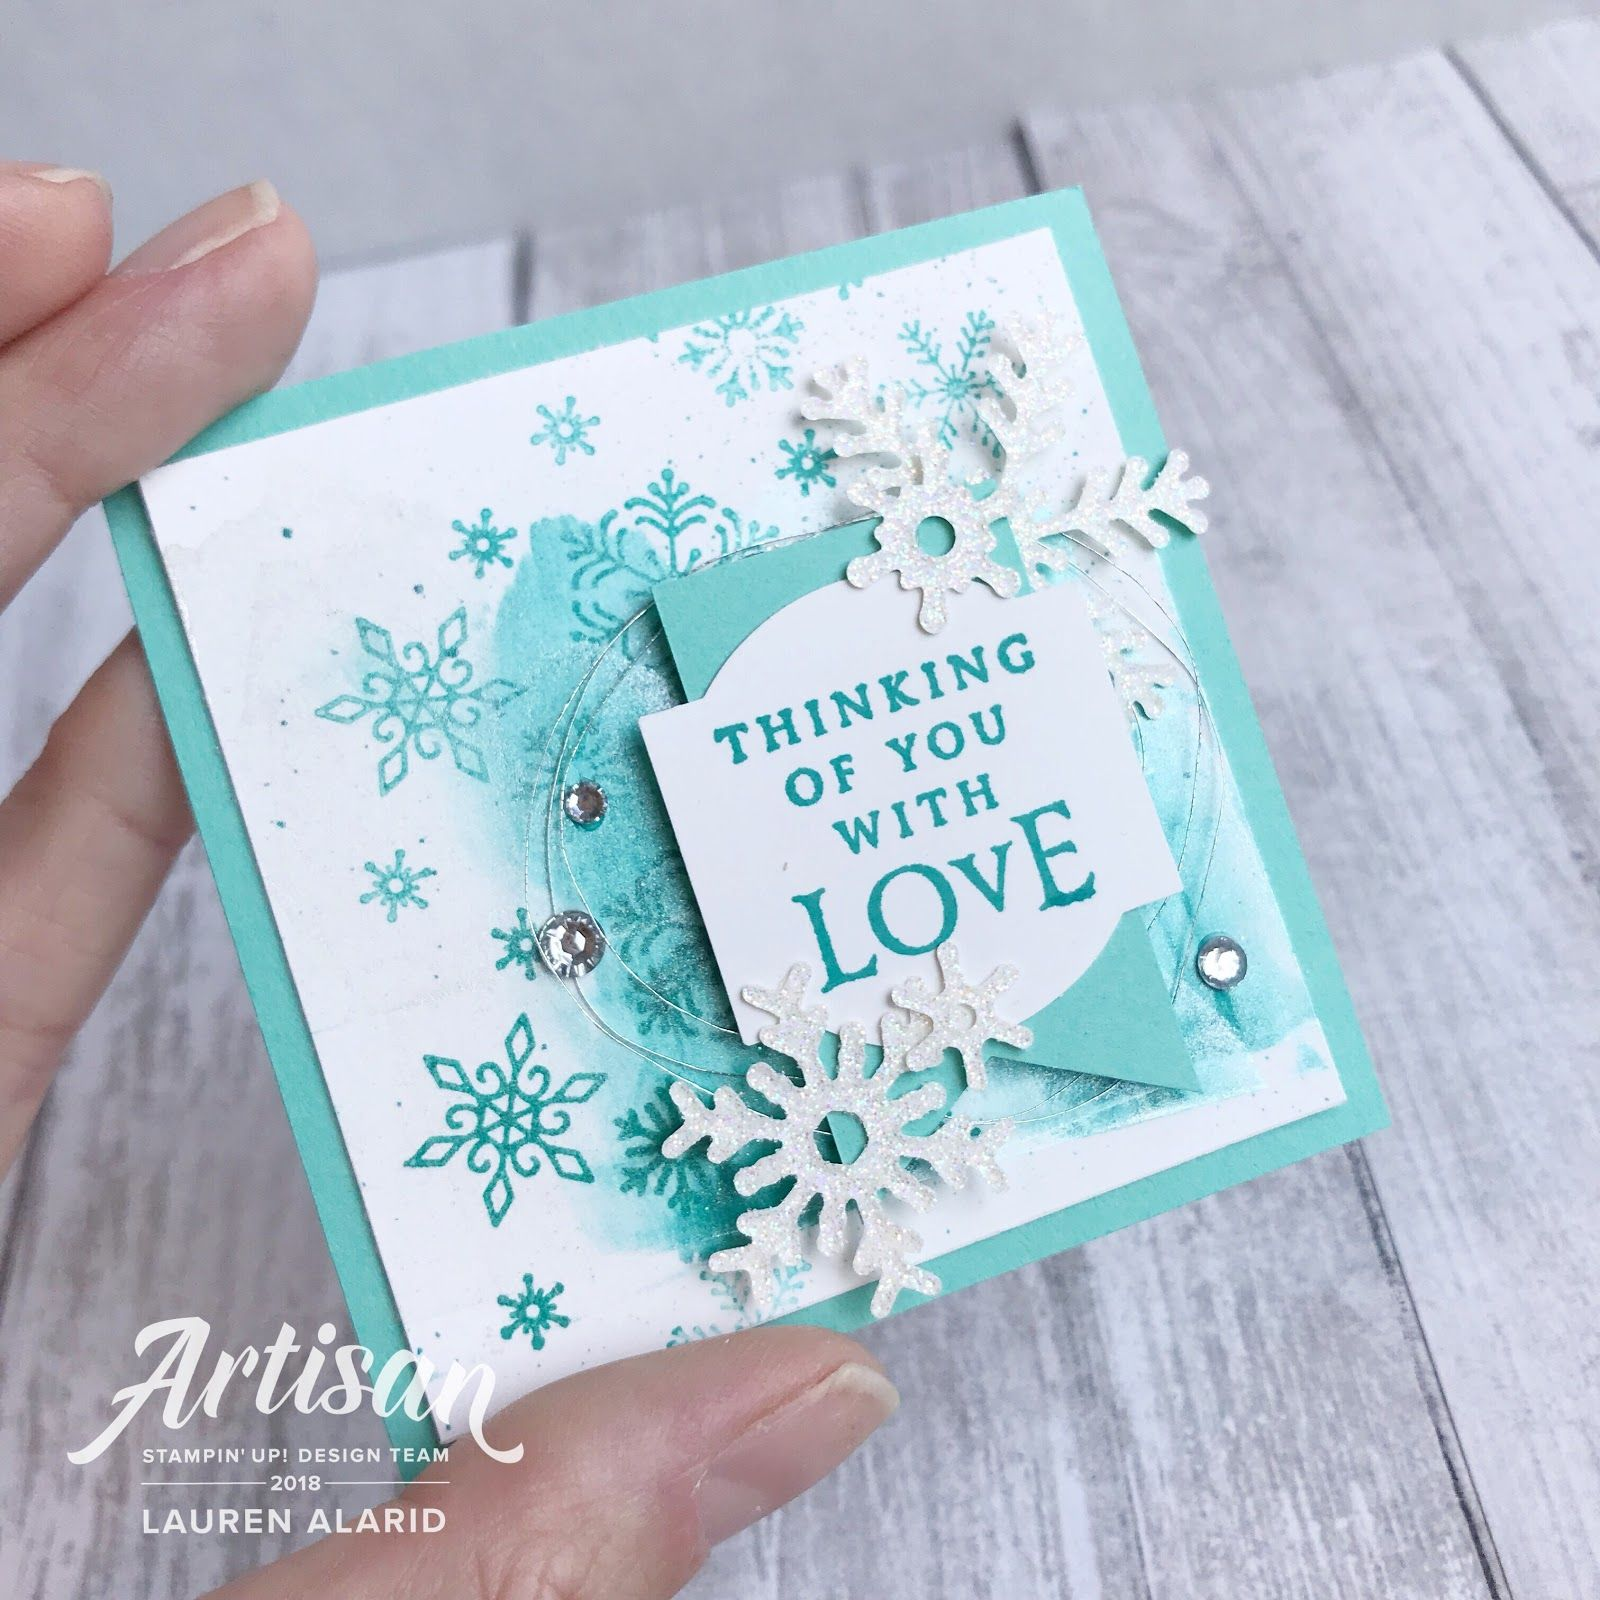 Stampin' Up! Beautiful Blizzard  Shimmer Paint Snowflake Christmas Card is part of Christmas snowflakes card, Snow christmas cards, Christmas note cards, Christmas cards, Stampin up christmas cards, Printable christmas cards - Hey peaches! I hope that you're having a great week so far  I am on the blog today sharing a fun and easy technique using the brand new Beautiful Blizzard Stamp Bundle and Shimmer Paints  This set is absolutely gorgeous! I love that the coordinating die set cuts out these delicate little snowflakes, but that's not all! Because the die is one whole piece, you can use the negative piece as well! I just love that  For today's technique, we will be making a shimmer spread background  I thought this set would be perfect to combine with this technique because it's designed to create breathtaking flurries of snow  Here's how you create the background 1  Take your Frost White Shimmer Paint and add four drops, spaced evenly, along one side of your Watercolor Paper  The reason I chose watercolor paper is because this paper will not absorb the paint instantly, allowing you to spread the paint smoothly  2  Add a drop of Bermuda Bay Ink Refill to every other drop or shimmer paint  3  Take an old gift card and spread the paint, in a smooth swipe, across the paper  You can go back and run over it again to spread it more evenly if you like  The results are really quite unique and stunning! Here's a closeup of the finished card  Thanks so much for stopping by and I'll see you next post! I wanted to include the little lunchbox note that I made using a little paint that was left over on my gift card after swiping  I just couldn't bear to waste it  Don't forget! You can find me on Instagram and Facebook! Happy stamping! Bonus Days are back!!! For every $50 you spent during the month of August, you will have earned a $5 bonus coupon  Redeem your coupon codes September 130  Use my host code (XMUDHWJ9) for even more bonus items  Contact me for more info Craftylittlepeach@gmail com Host A Party Get your friends together and host a party to earn Stampin' rewards during the month of August! Contact me to book an event! To order online September 2018 Hostess Code XMUDHWJ9 Or email me @ Craftylittlepeach@gmail com Join My Team! If you've considered joining, it's a truly great time! For just $99, you can select $125 of your choice of product AND earn a 20% discount on purchases from the Annual Catalog  This is an amazing deal! If you want to join my team, click here or please email me! Supplies Beautiful Blizzard ClearMount Bundle $45 75 Frost White Shimmer Paint $8 00 Bermuda Bay Classic Stampin' Ink Refill $3 75 Bermuda Bay Classic Stampin' Pad $7 50 Watercolor Paper $5 00 Blueberry Bushel Classic Stampin' Pad $7 50 Sparkle Glimmer Paper $5 00 Metallics Sequin Assortment $5 00